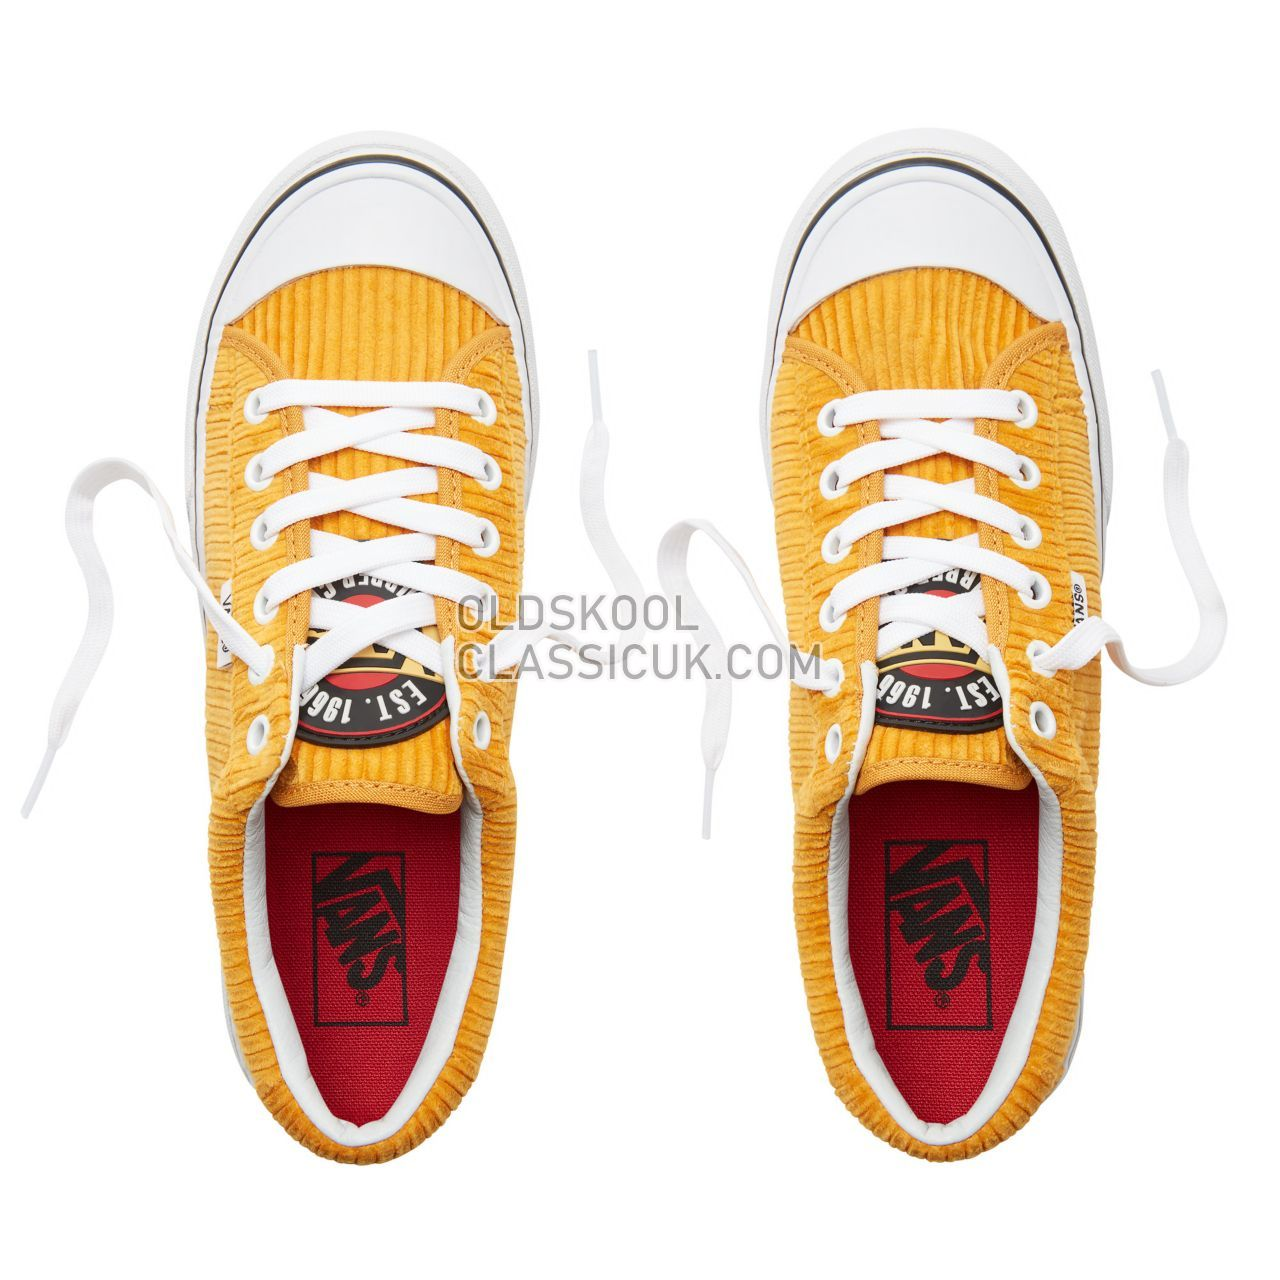 Vans Design Assembly Corduroy Style 29 Sneakers Womens (Design Assembly) Sunflower/True White VA3MVHU7D Shoes